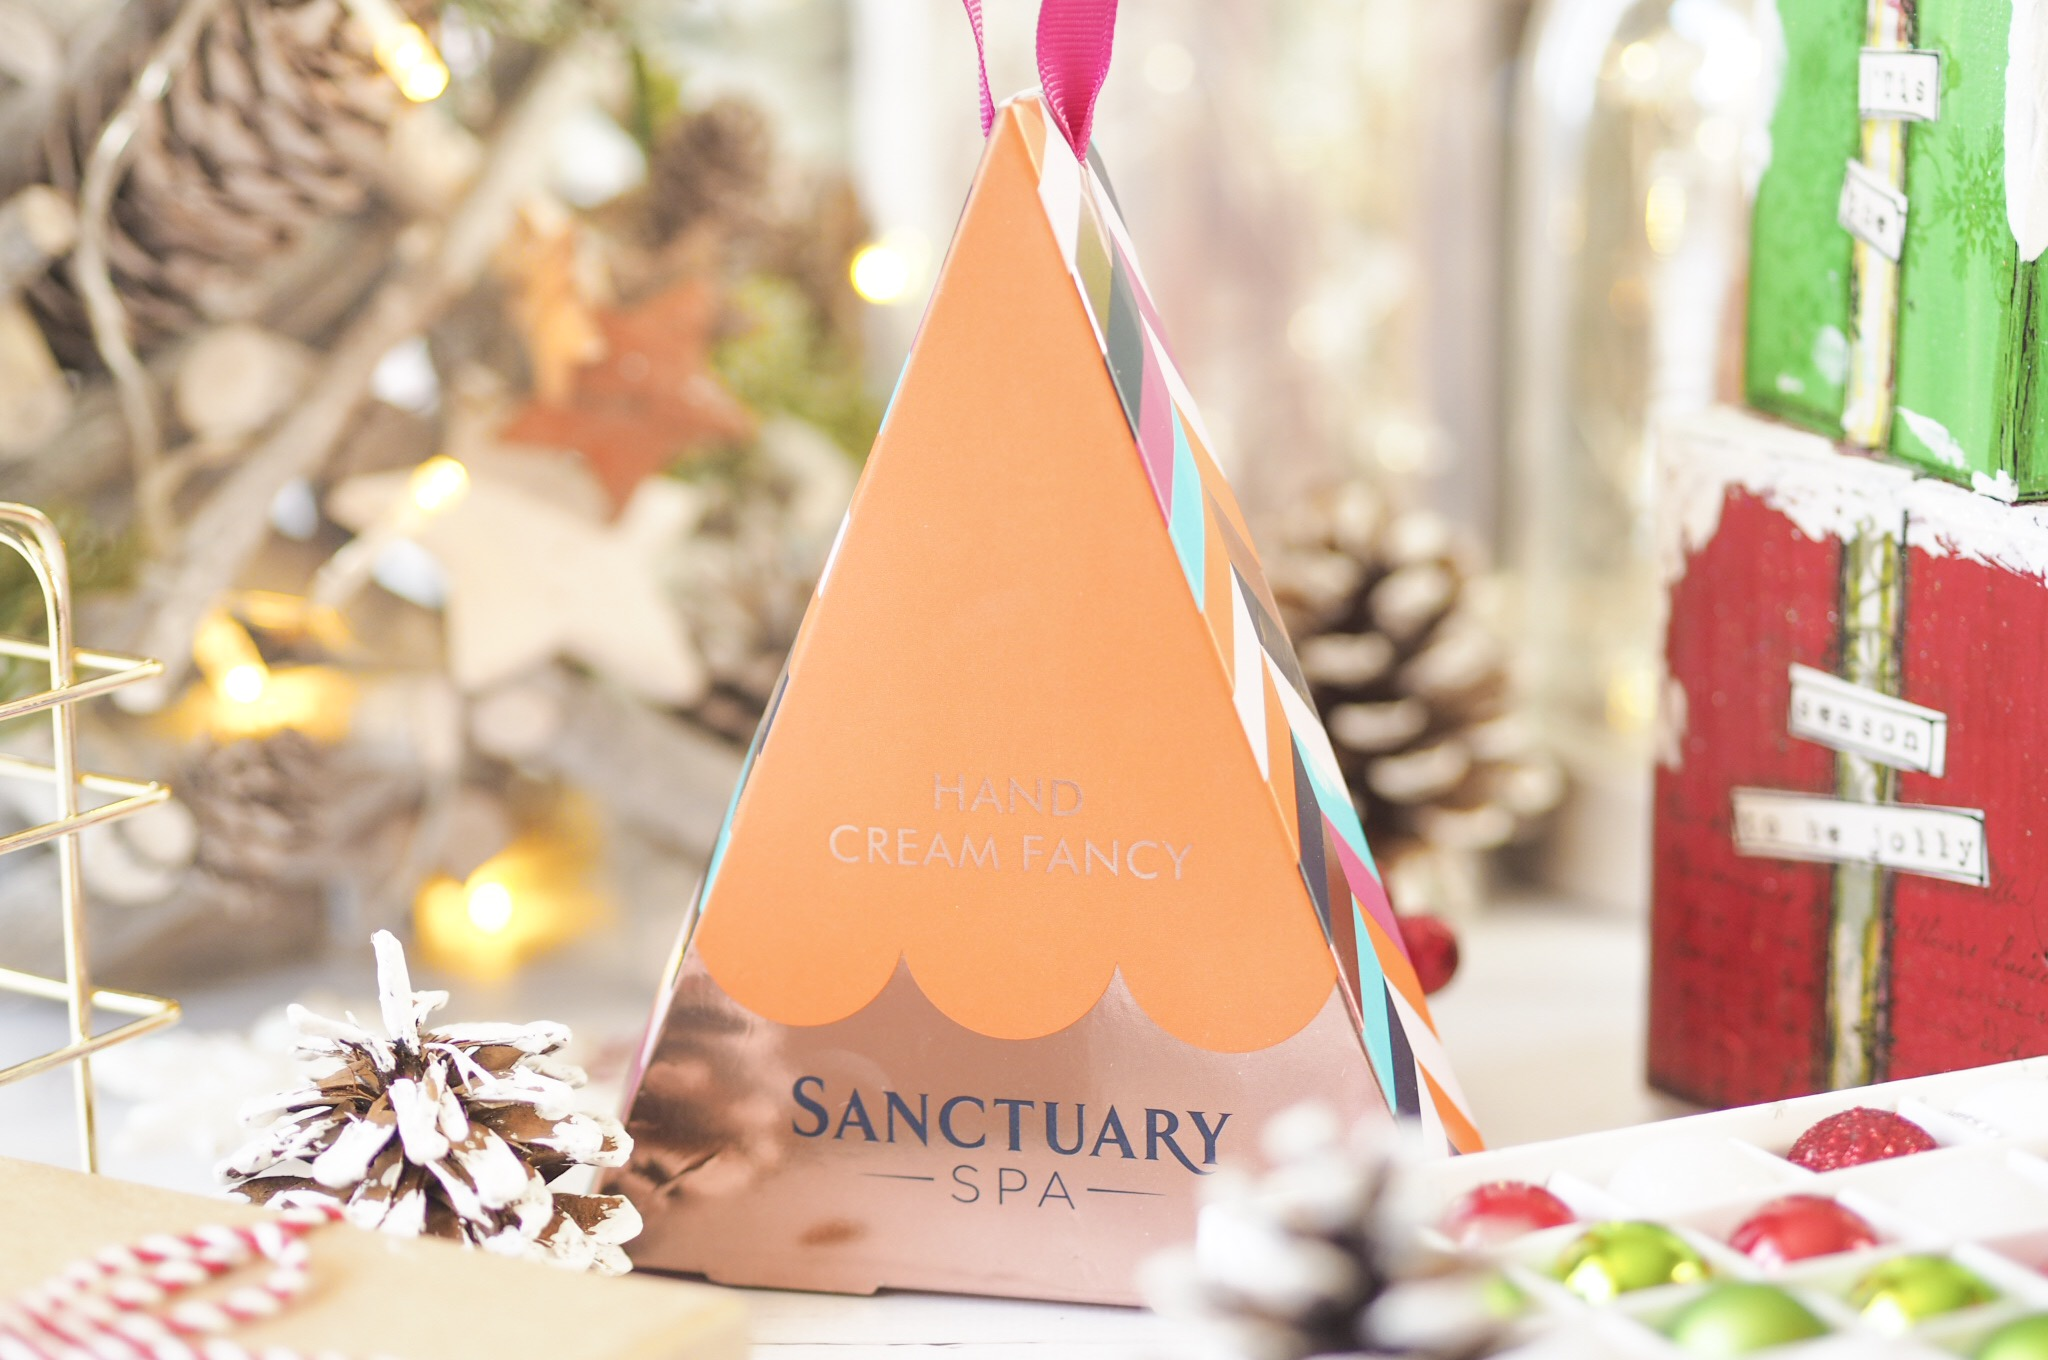 Sanctuary Spa Hand Cream Fancy